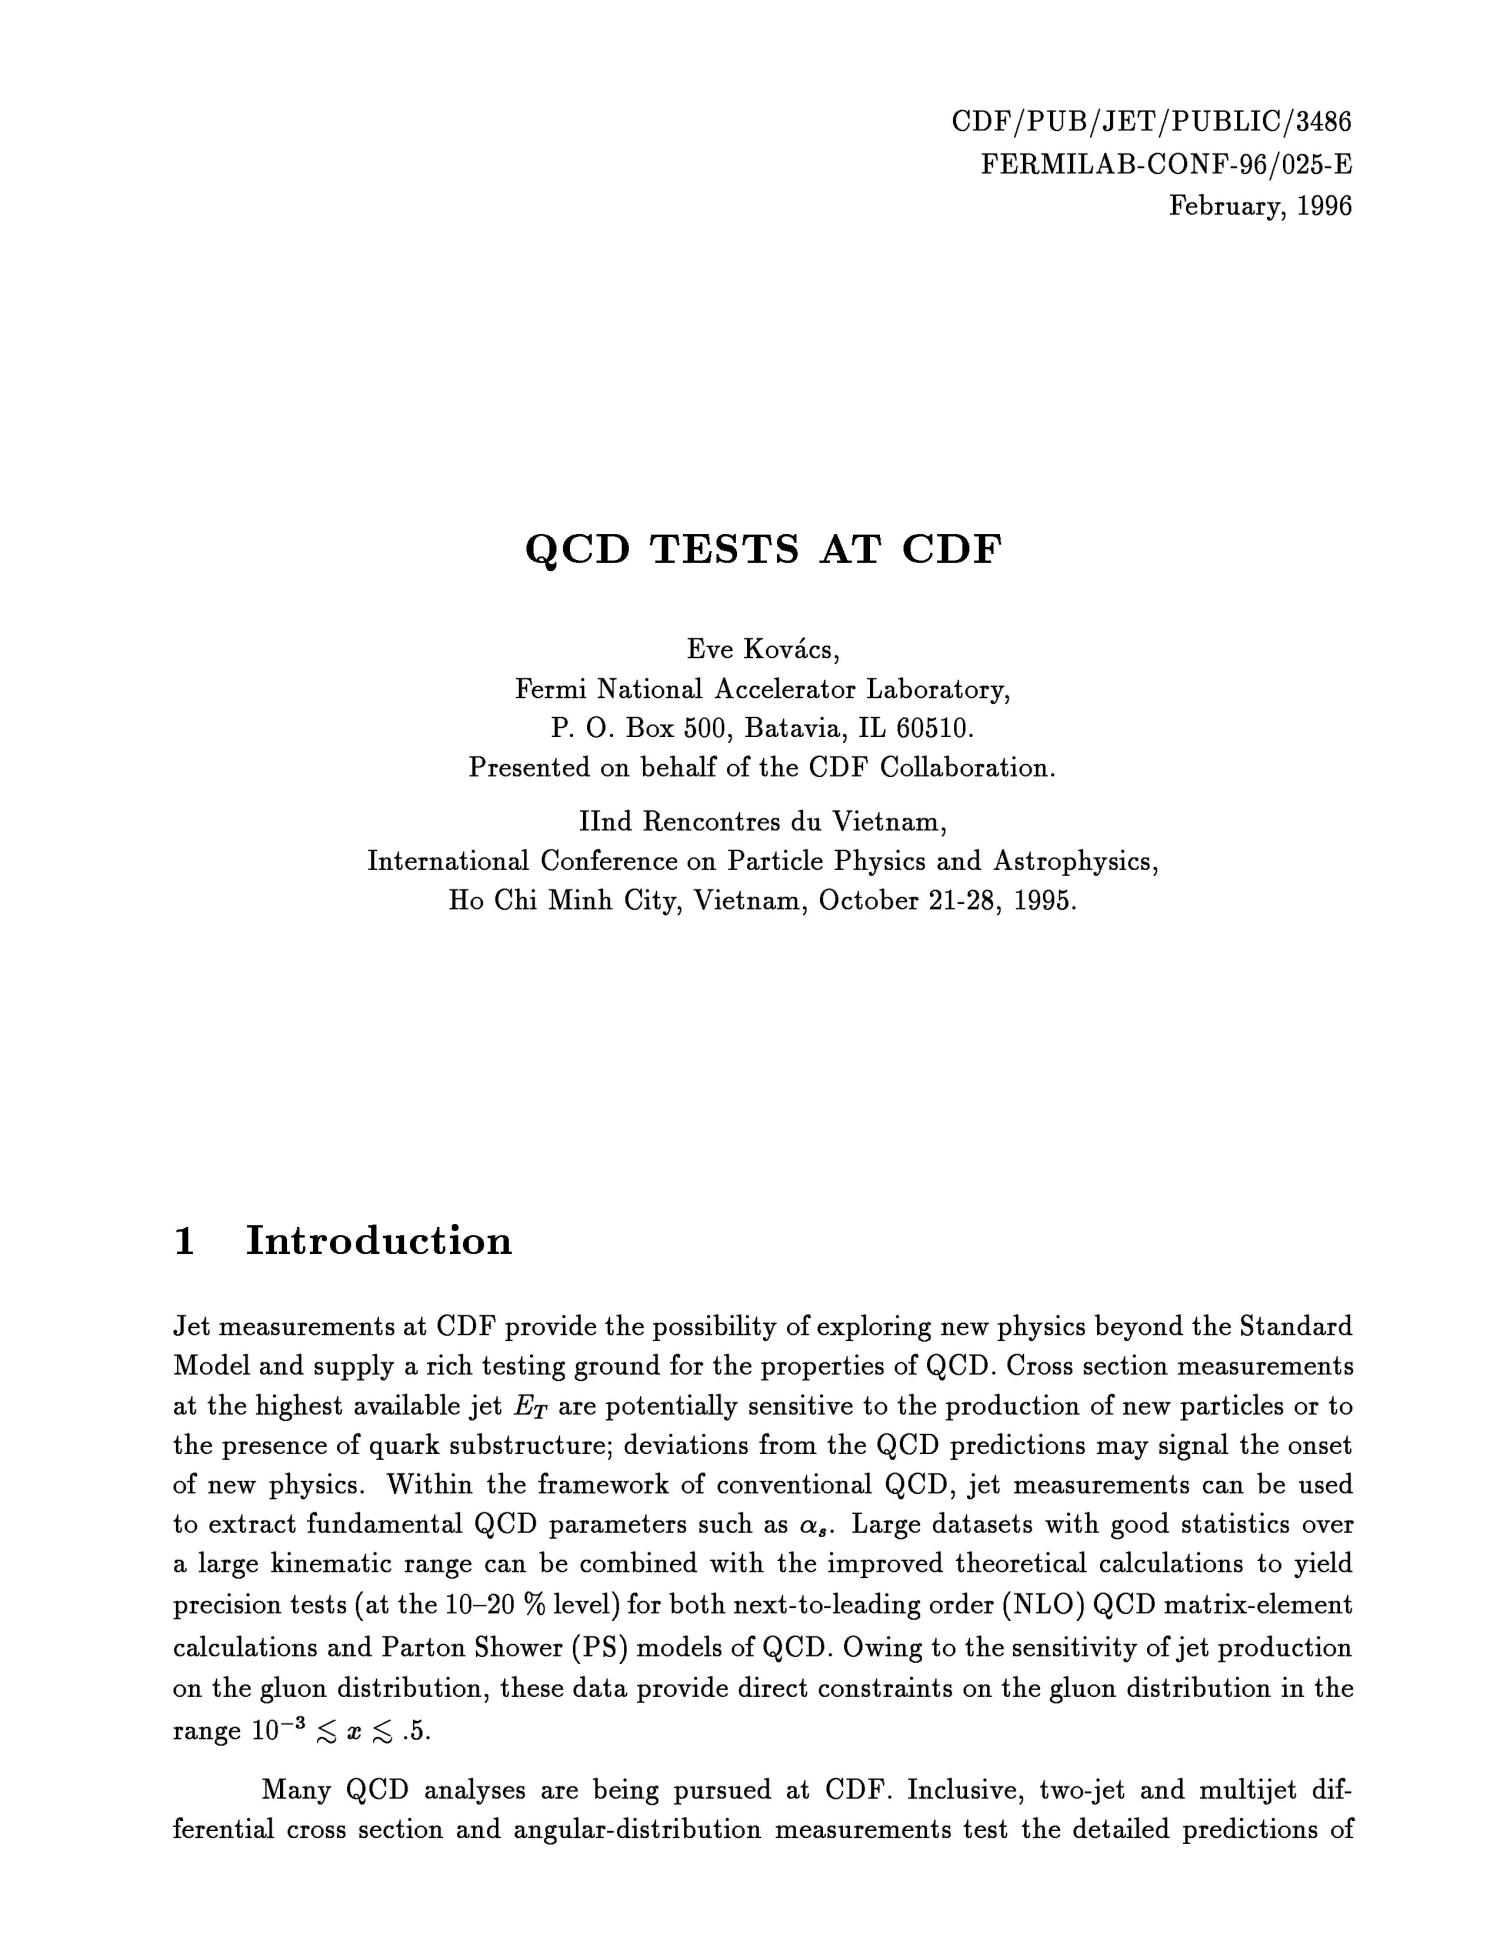 QCD tests at CDF                                                                                                      [Sequence #]: 3 of 10